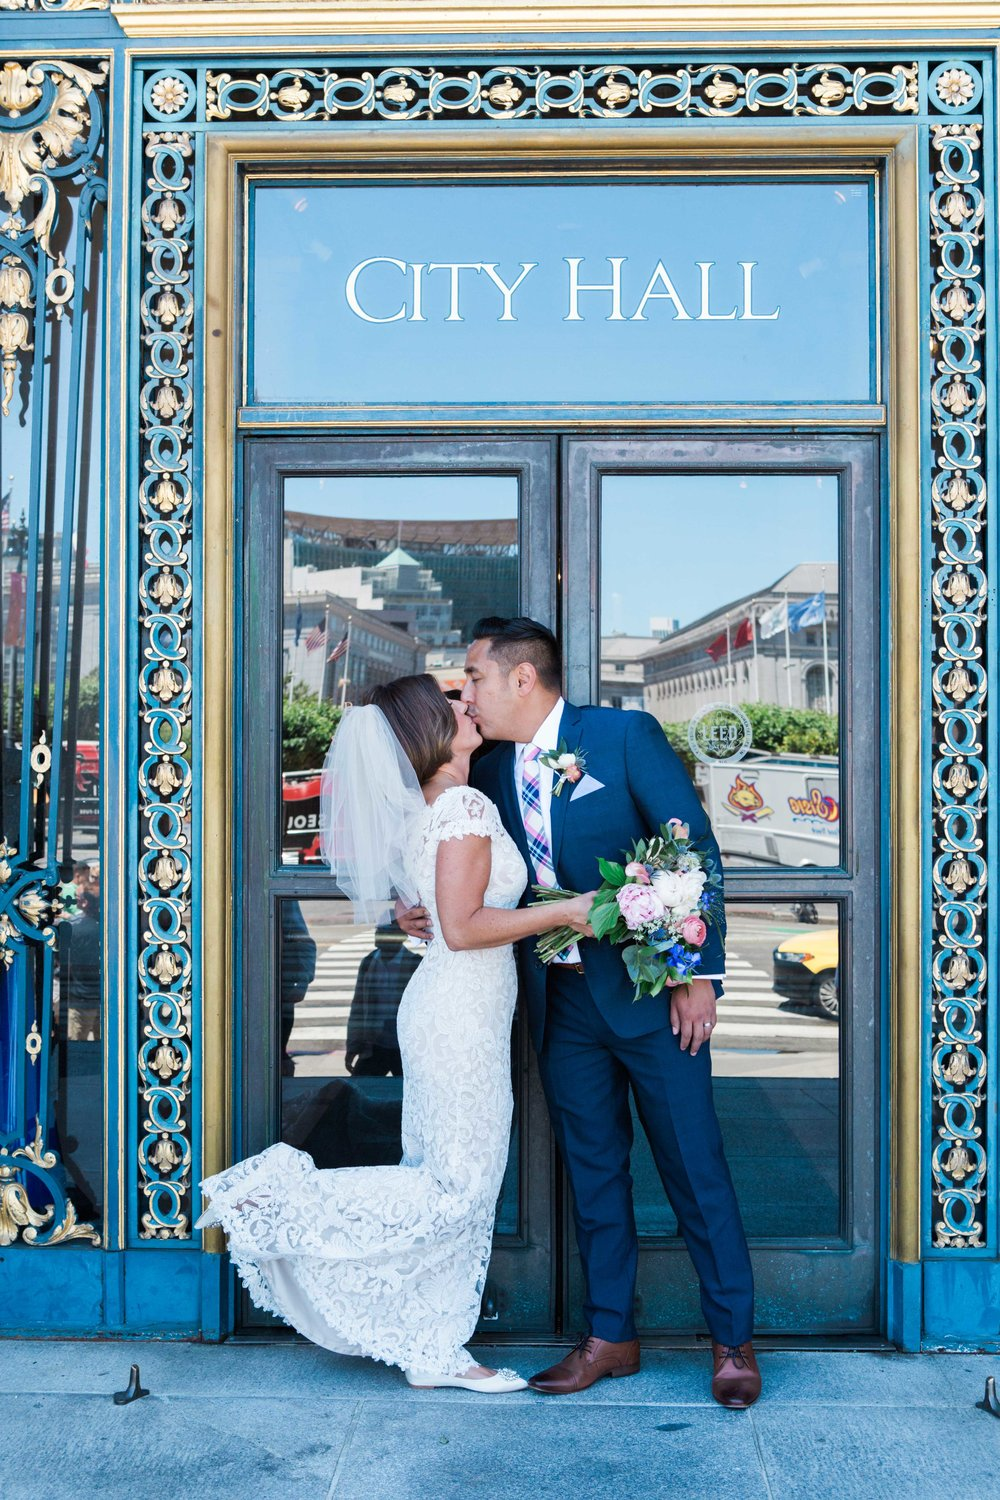 San Francisco & City Hall Wedding